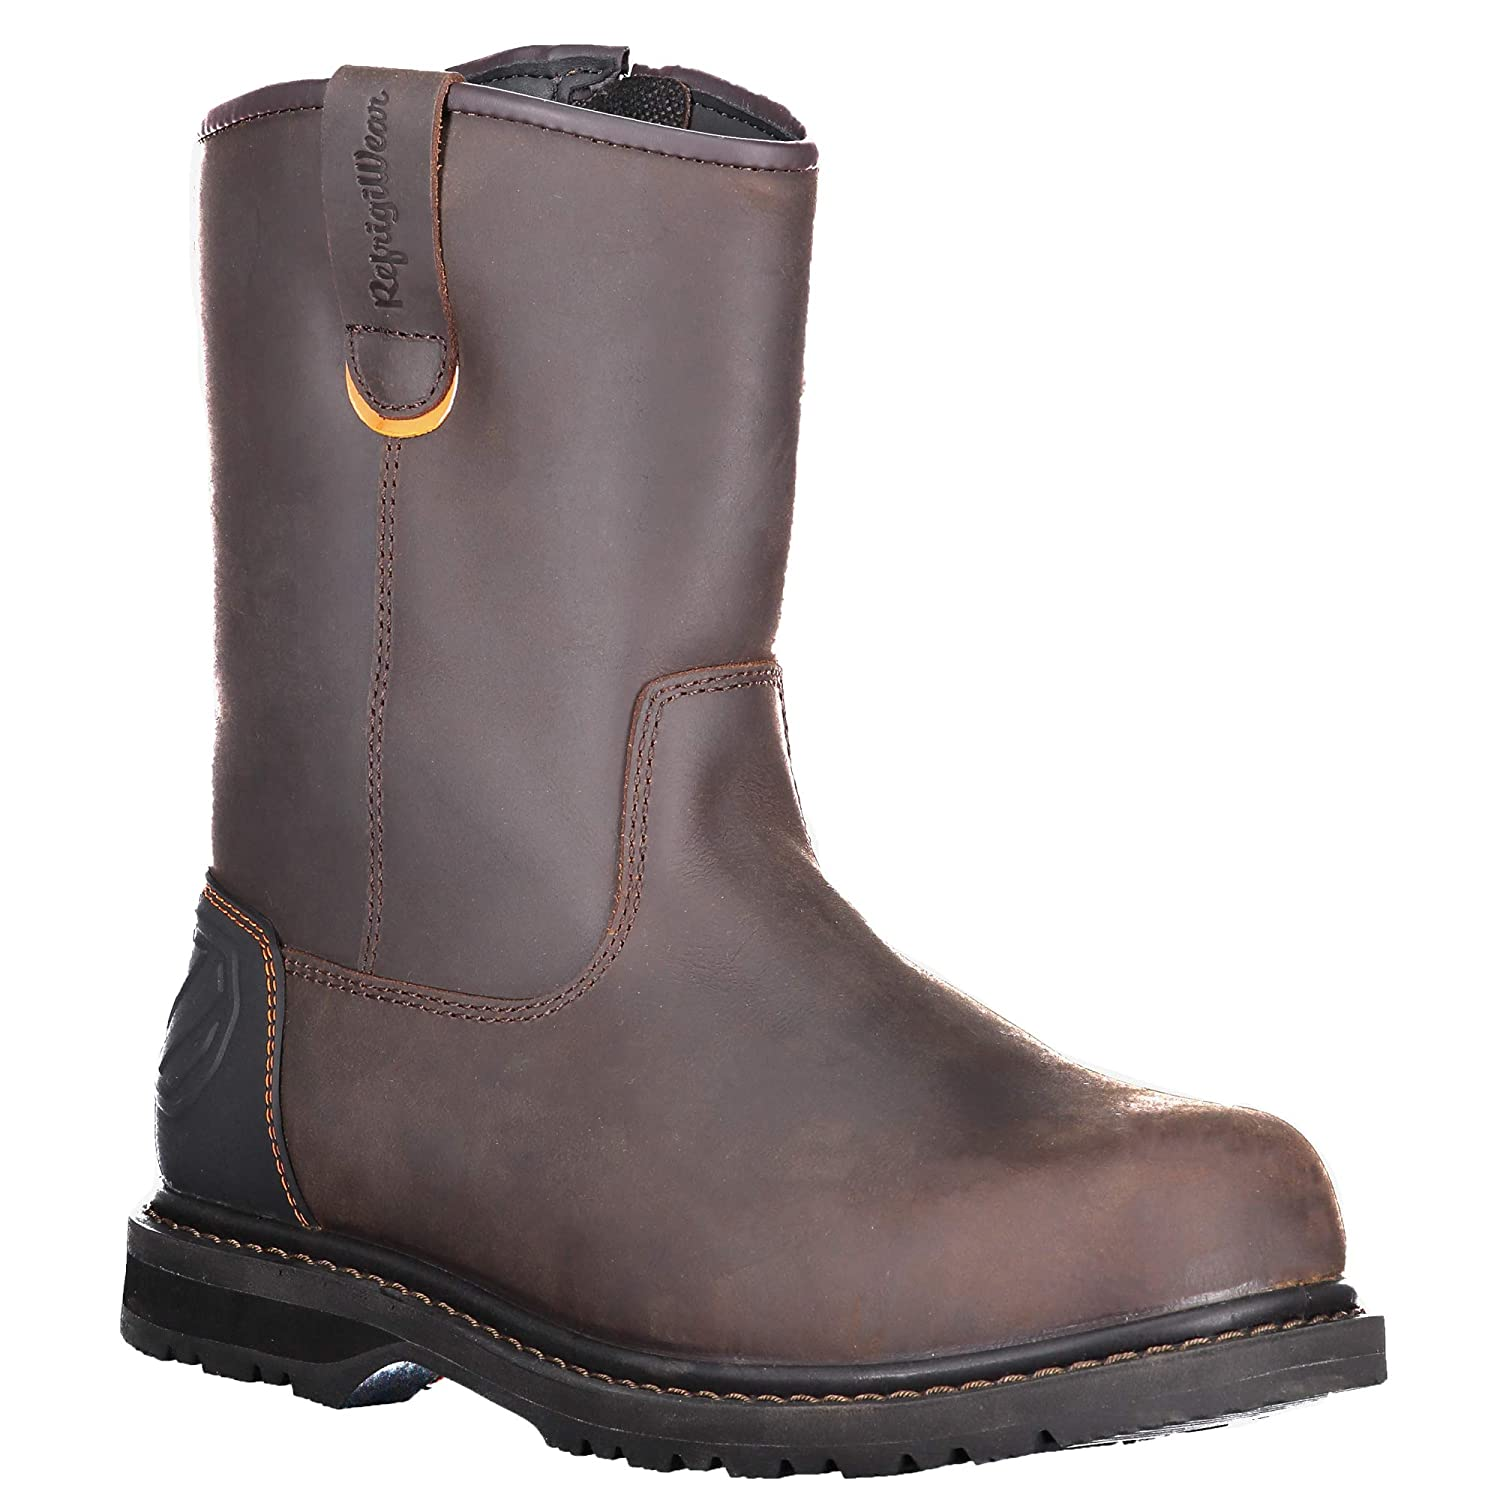 RefrigiWear Mens Barrier Lightweight Insulated 9-Inch Brown Leather Work Boots